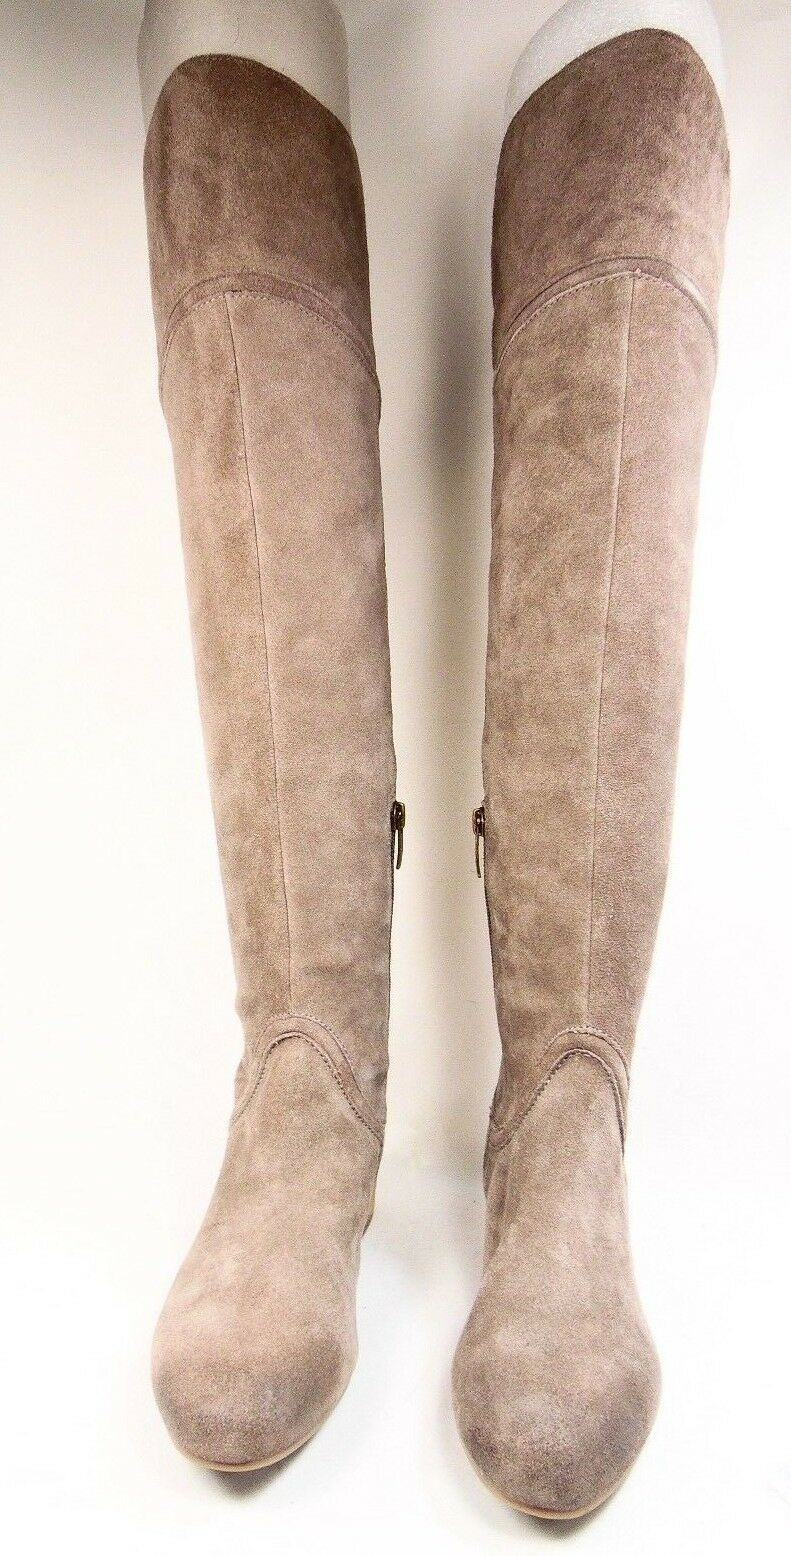 ENZO ANGIOLINI MALACI Womens High Boots  Suede Leather Taupe Size 6.5M